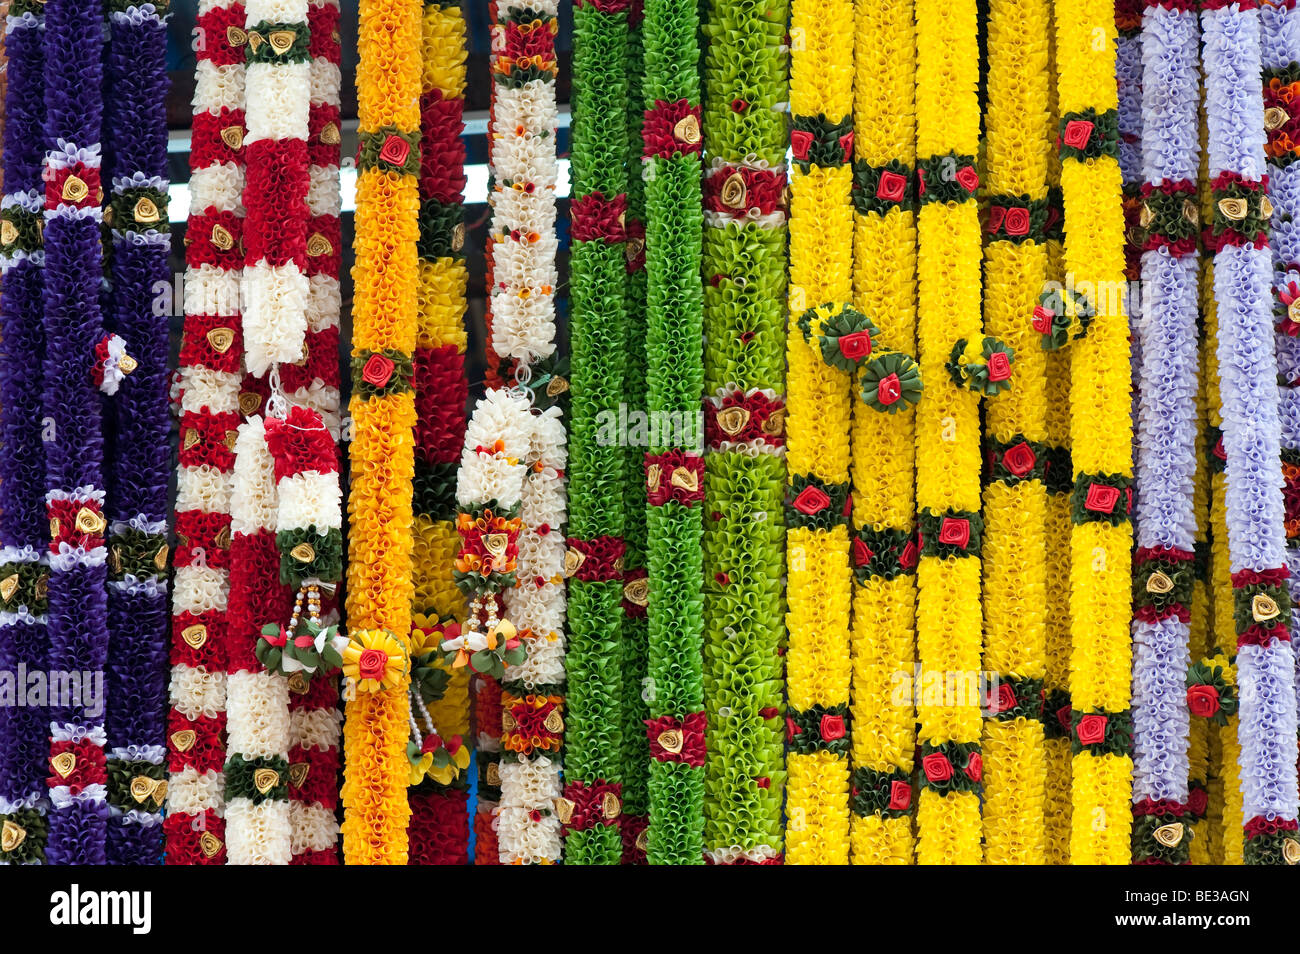 Imitation flower garlands used in Hindu religious worship on a market stall in India - Stock Image